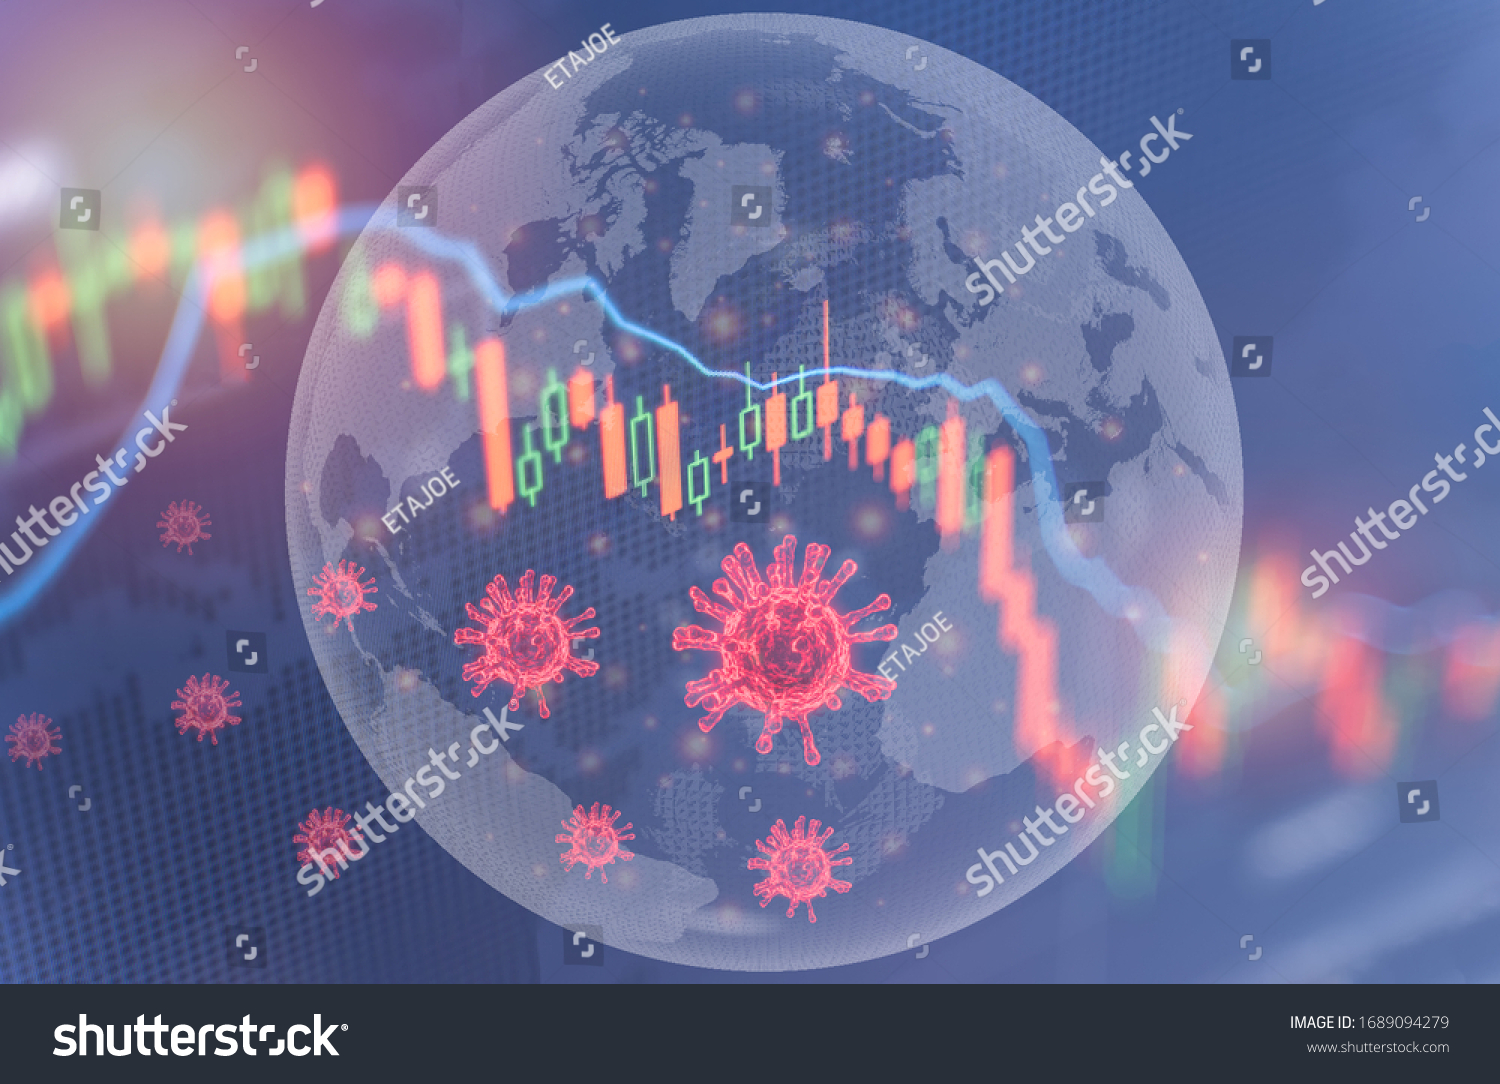 Coronavirus impact global economy stock markets financial crisis concept,The coronavirus or covid-19 sinks the global stock exchanges. Graphs representing the stock market crash caused by Coronavirus  #1689094279